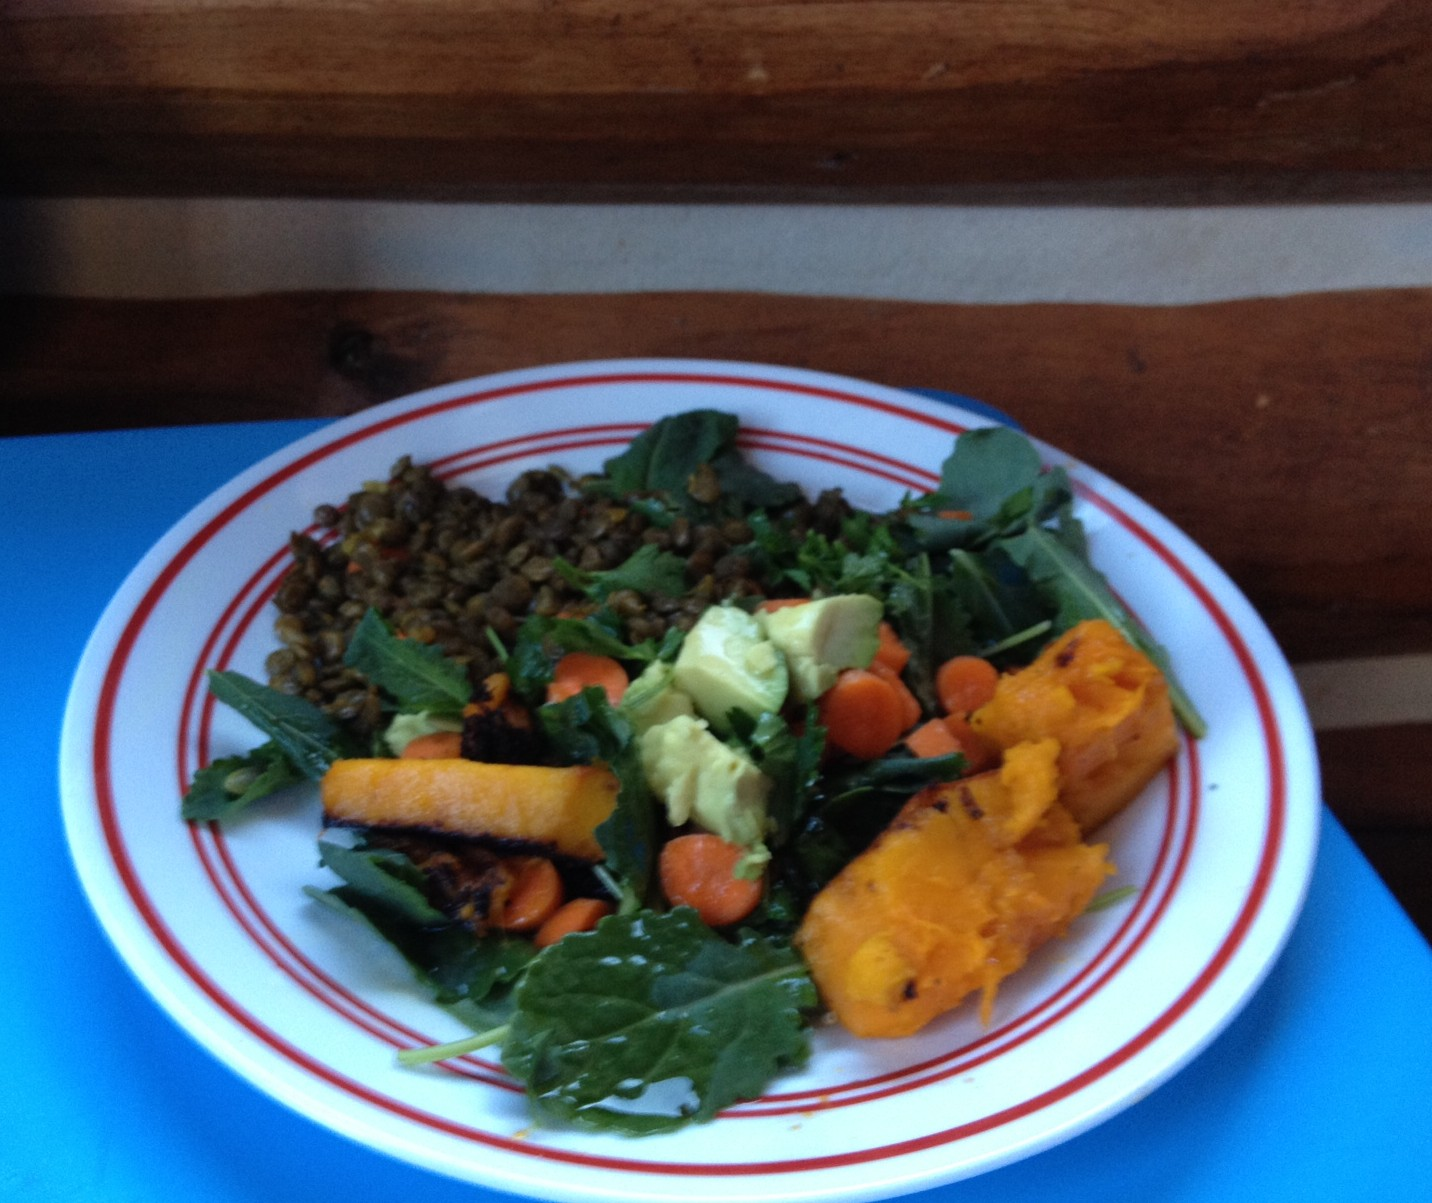 Roasted pumpkin salad with spicy lentils, kale and avocado